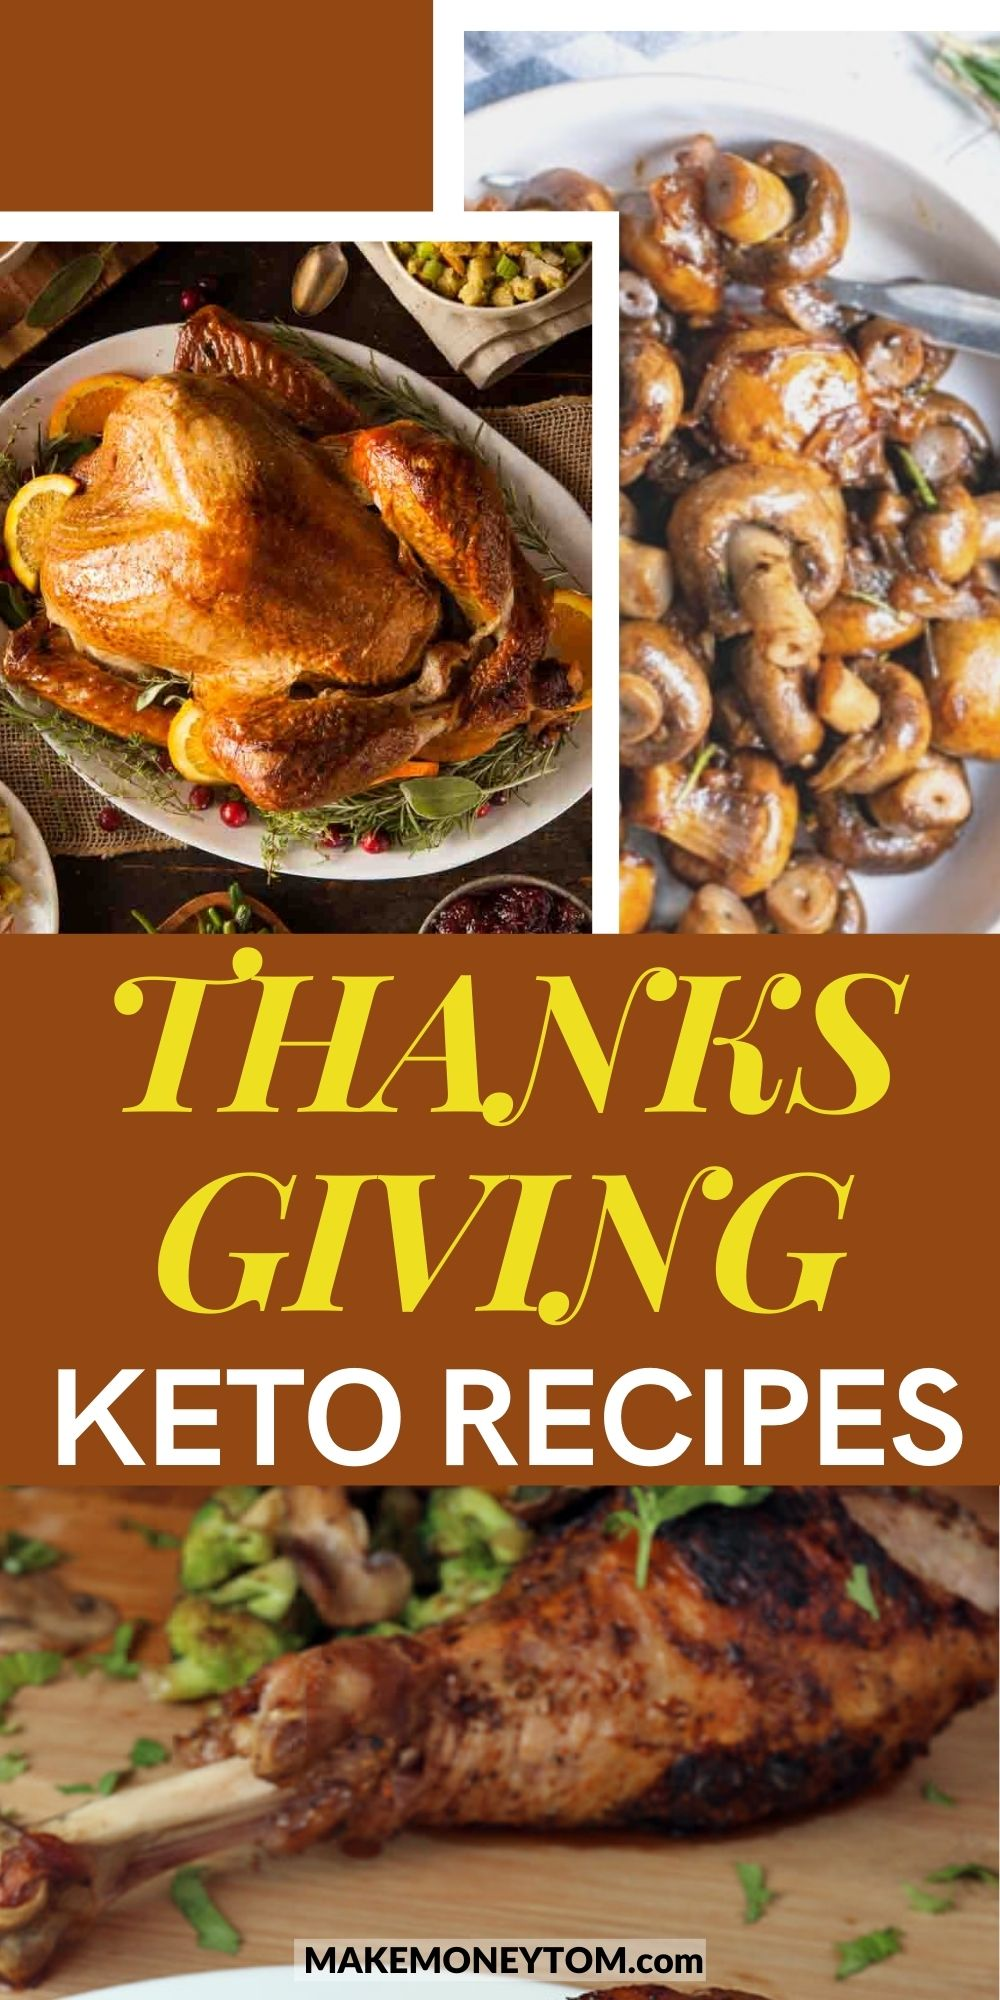 Keto Thanksgiving Recipes That Will Make Your Holiday Yummy